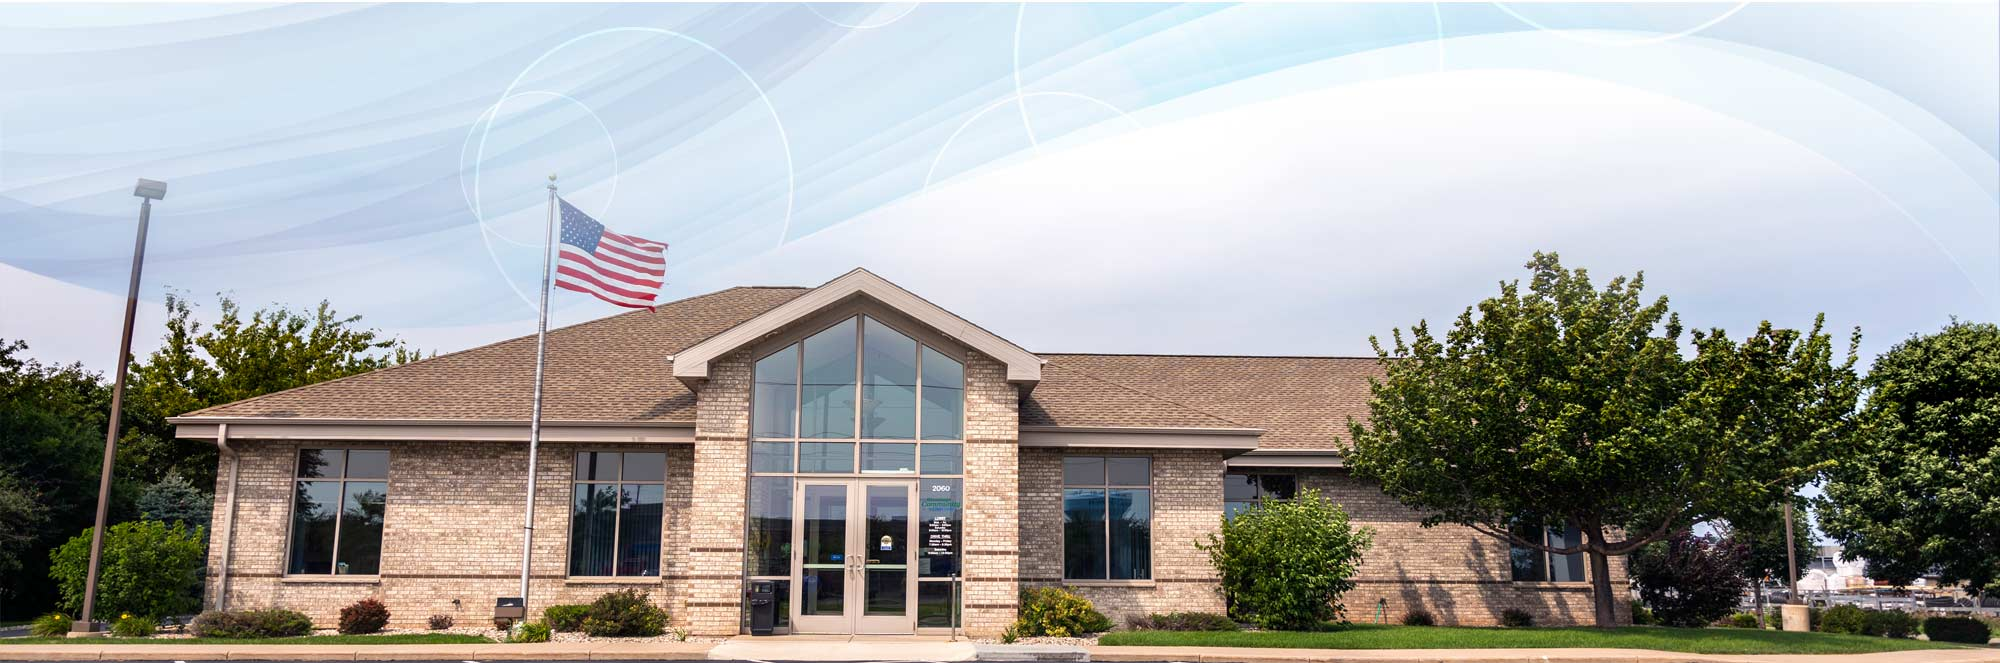 Winnebago Community Credit Union